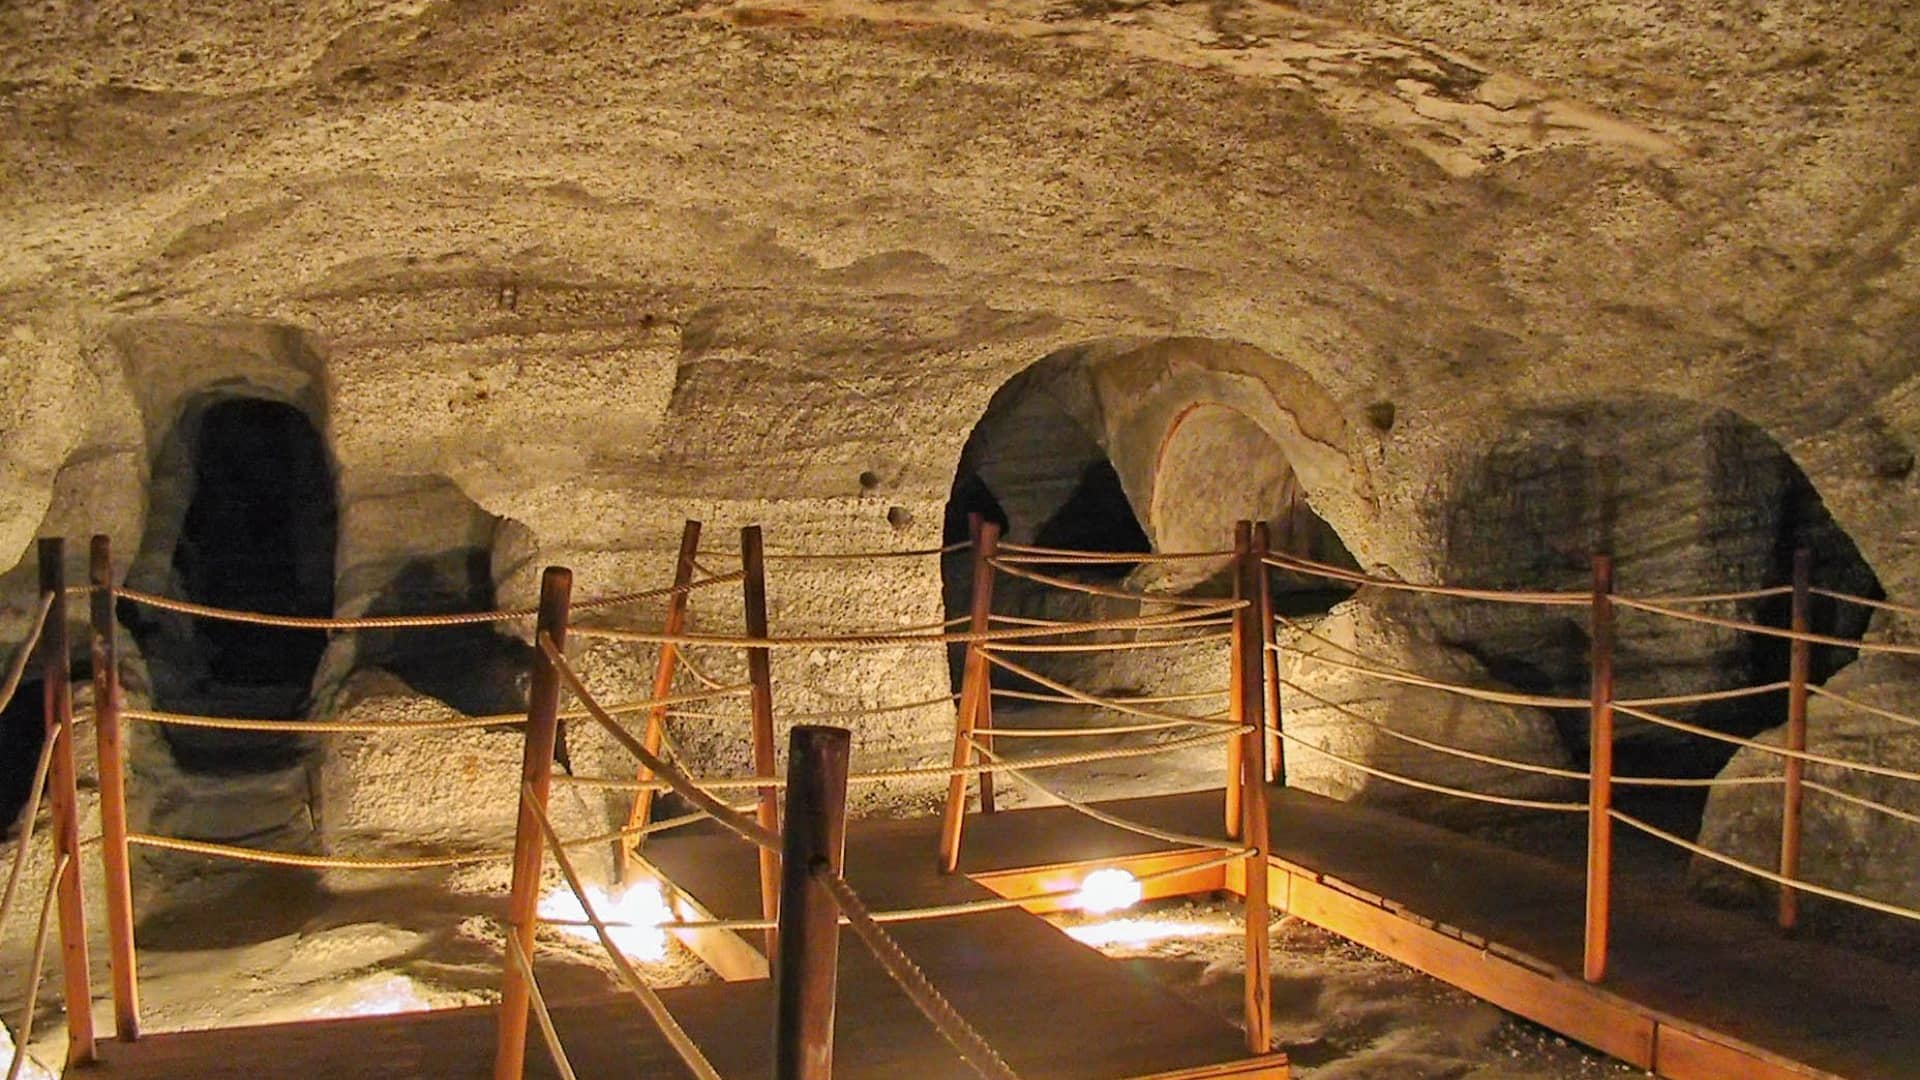 The old Christian catacombs in Milos